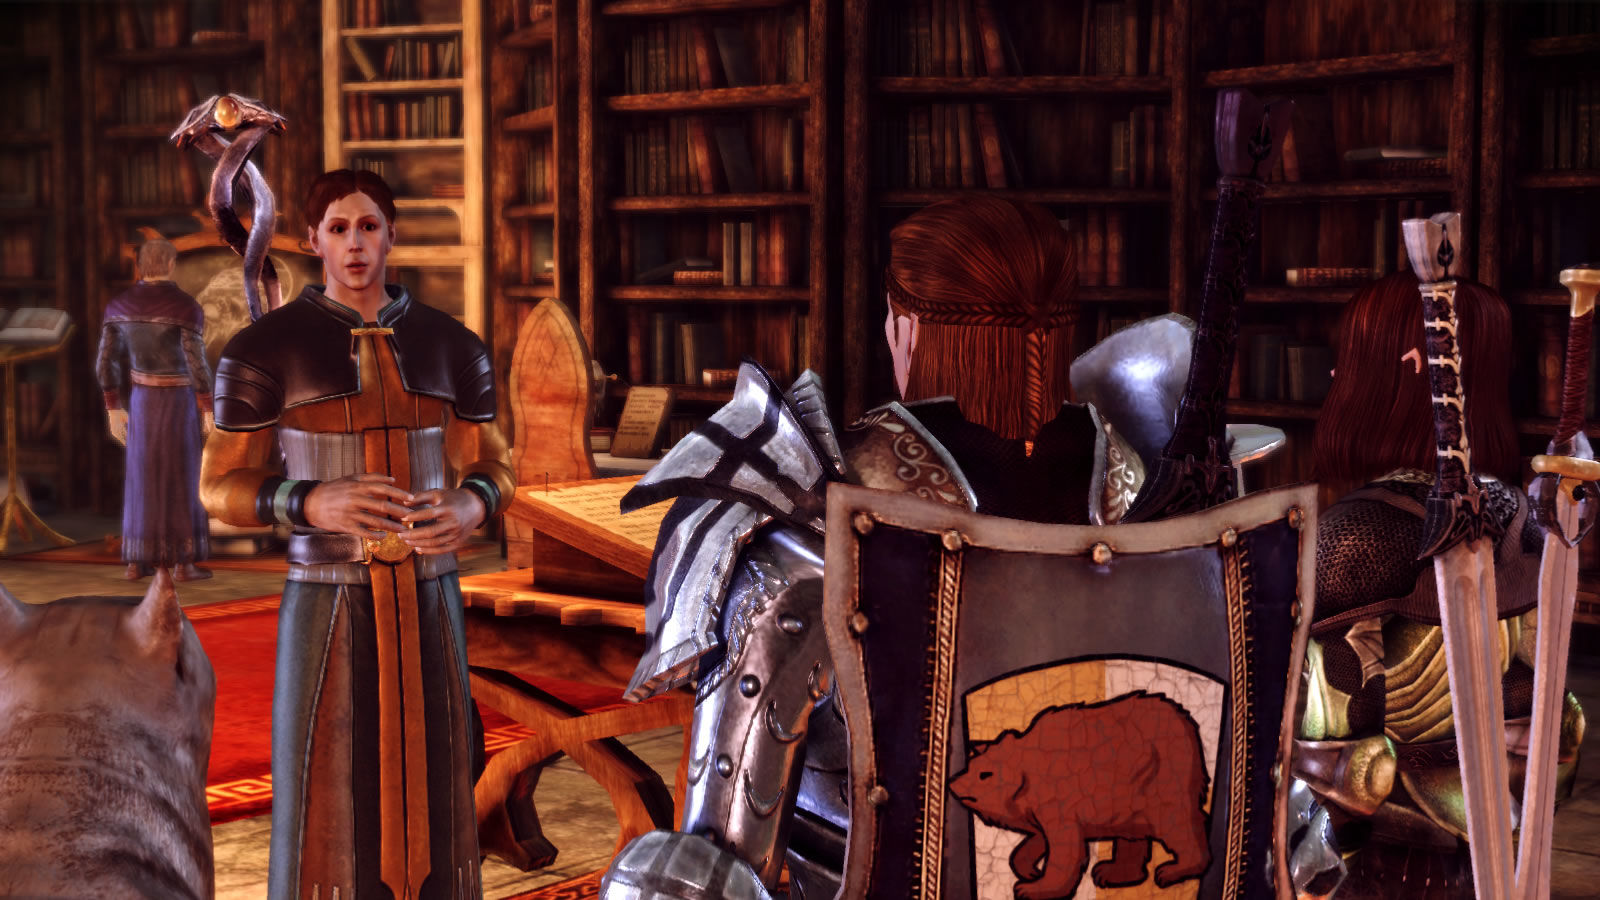 http://www.mobygames.com/images/shots/l/477942-dragon-age-origins-witch-hunt-windows-screenshot-meeting-finn.jpg